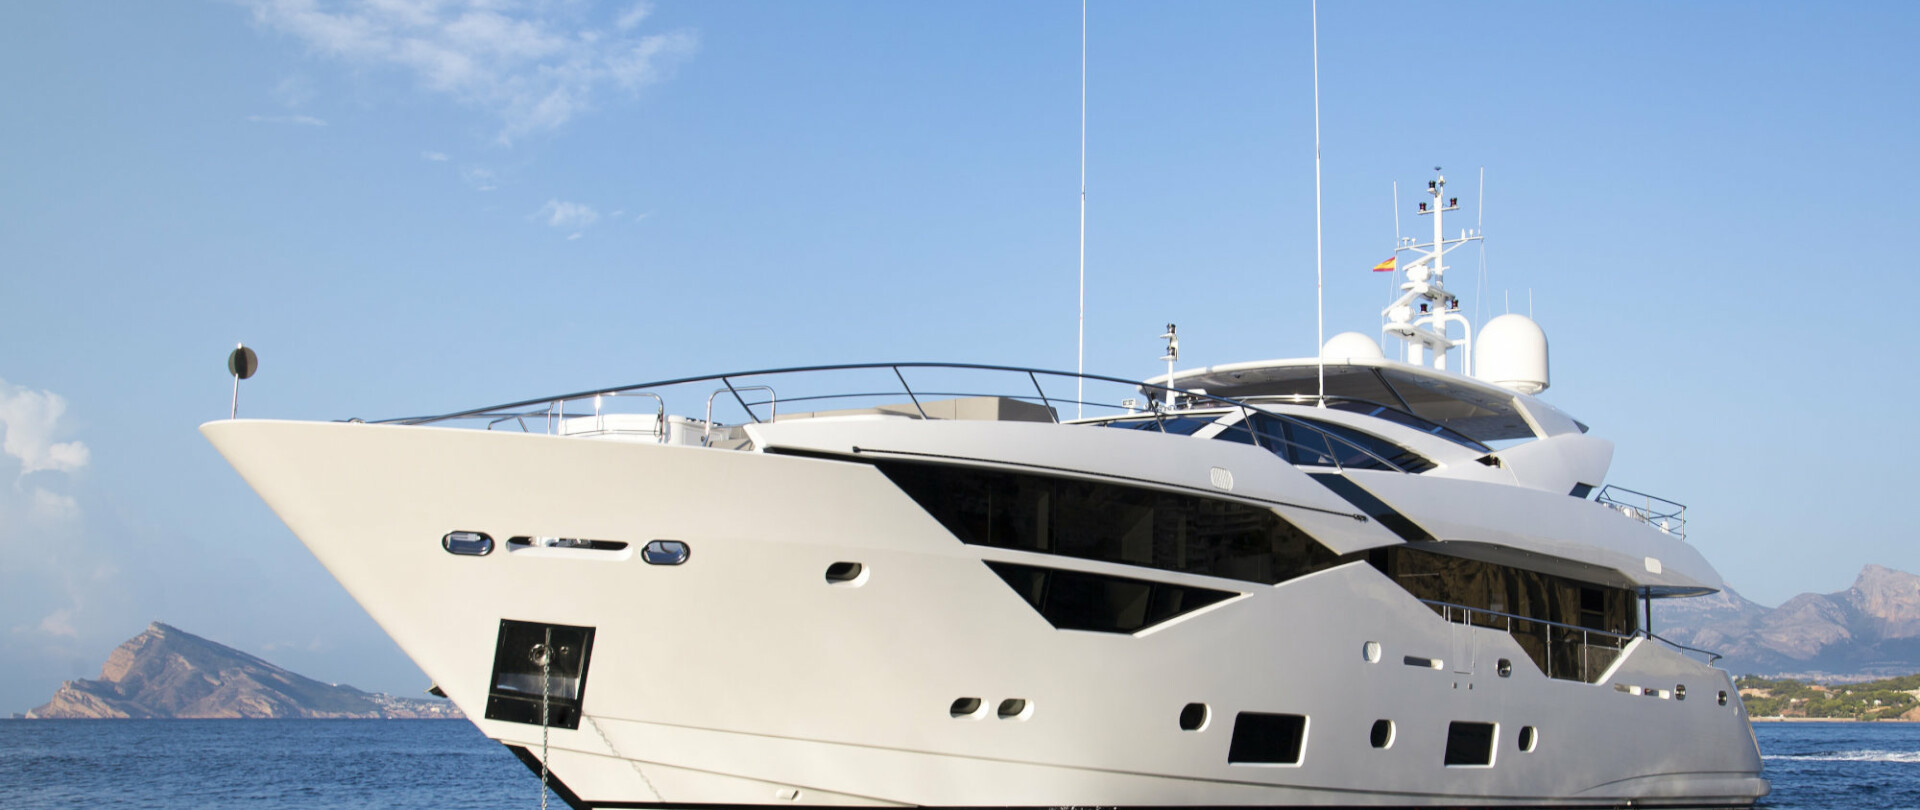 Spectre - Major €1.7m price reduction   photo 1